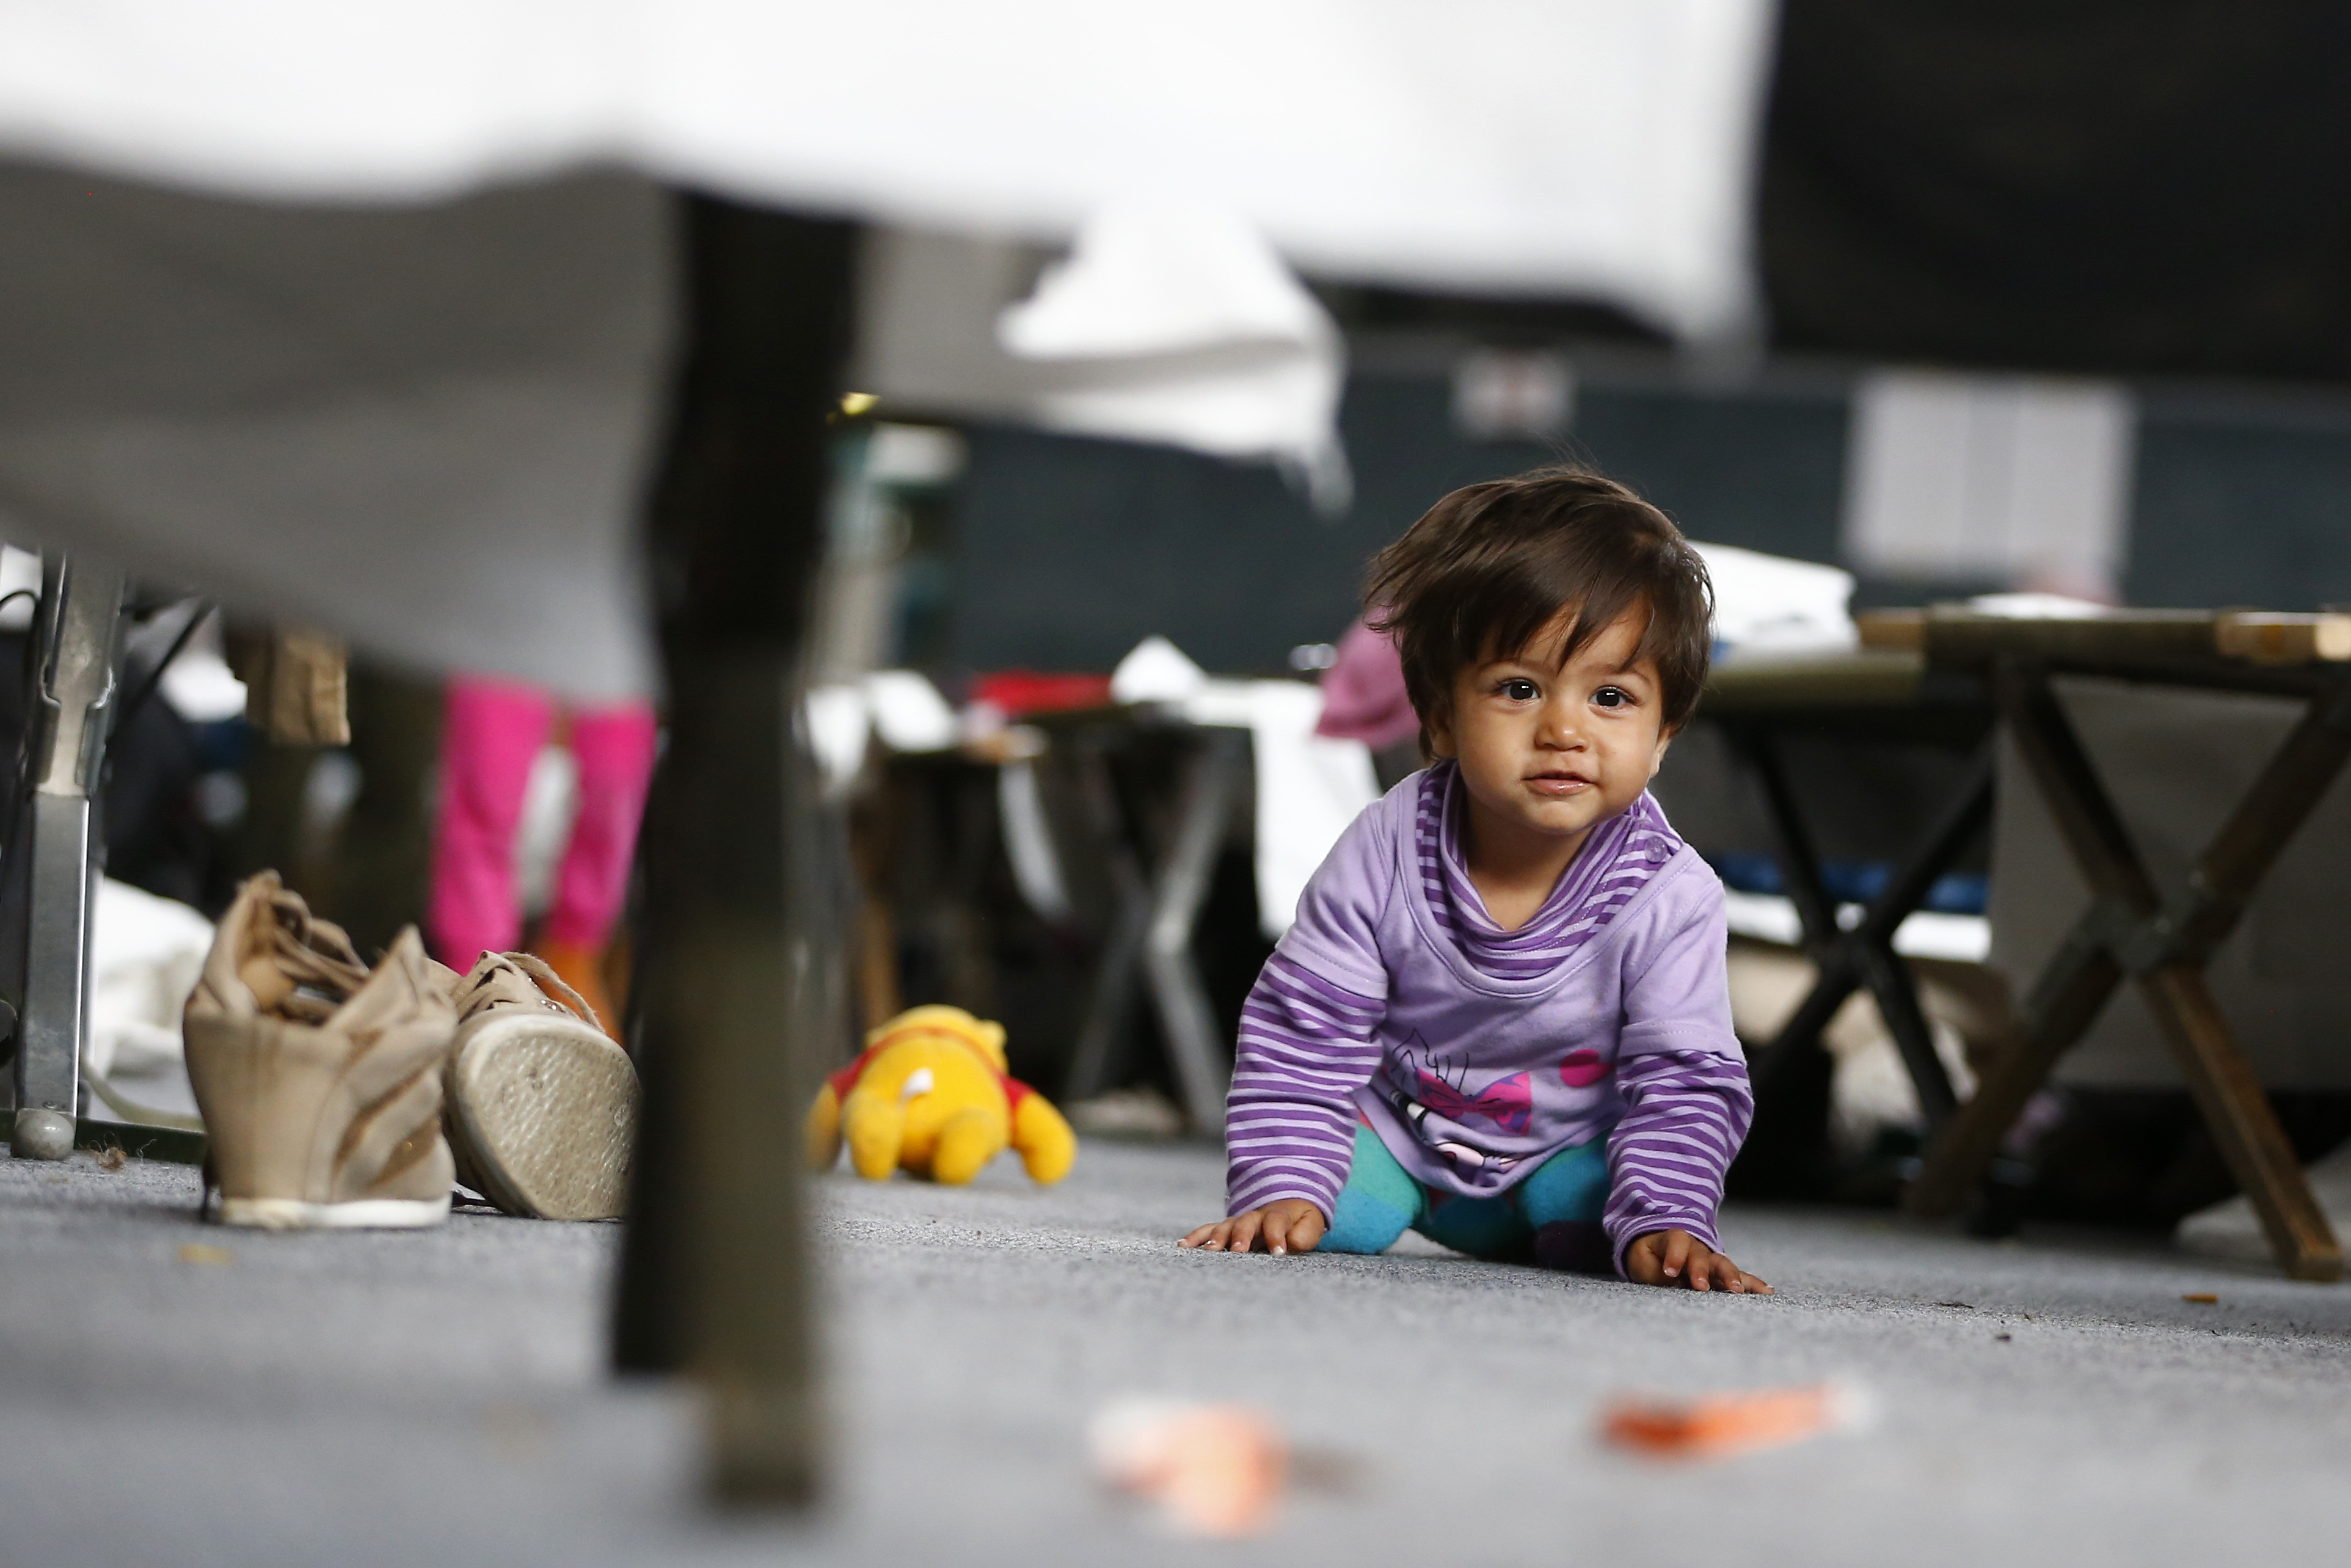 A migrant child looks on as it sits on the ground at an improvised temporary shelter in a sports hall in Hanau, Germany, on Sept. 24, 2015. Photo by Kai Pfaffenbach/Reuters